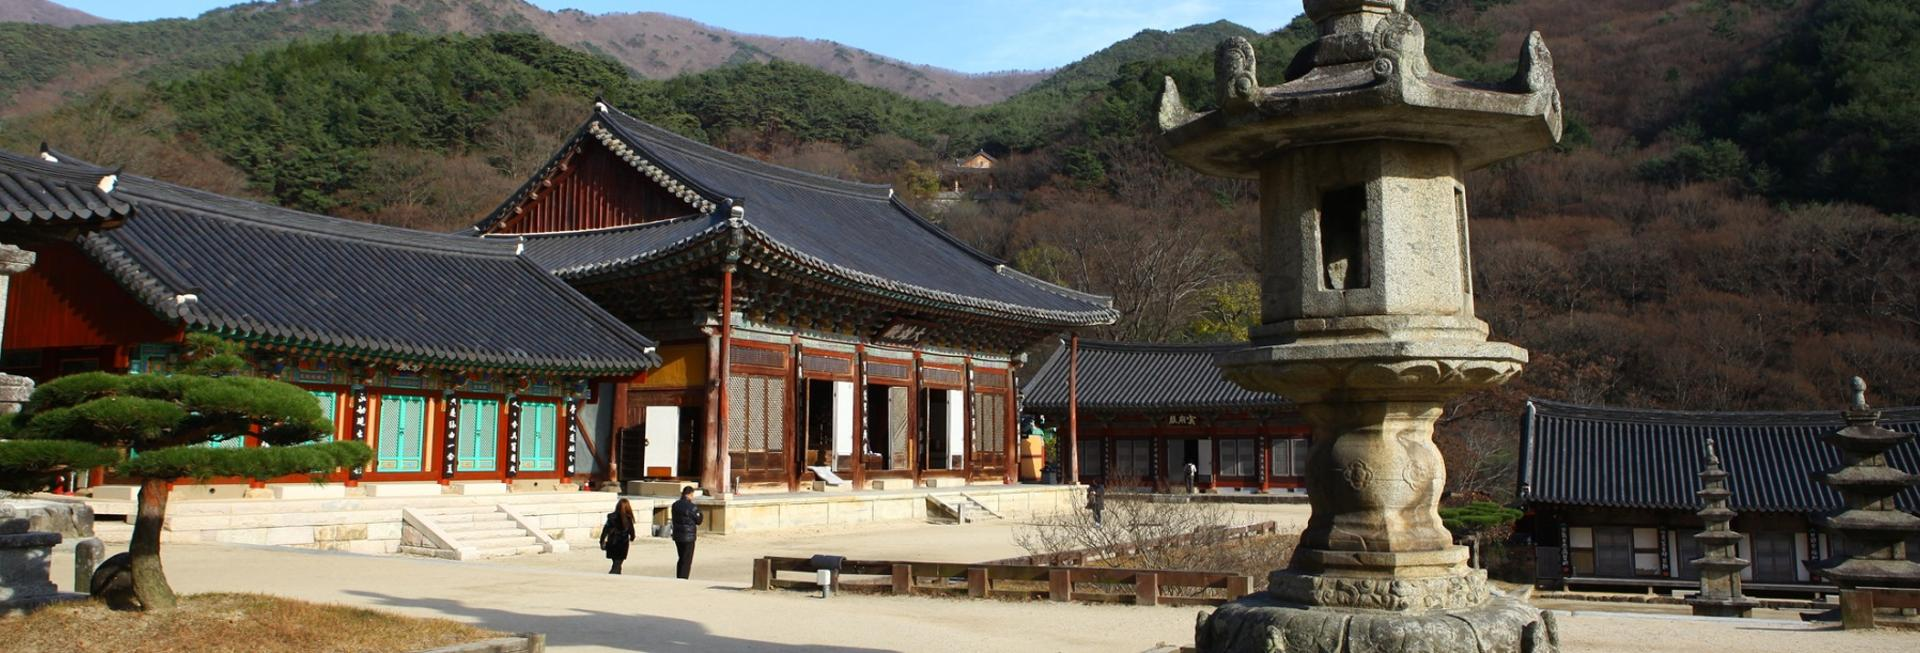 Hwaeomsa Temple Stay, Jirisan National Park